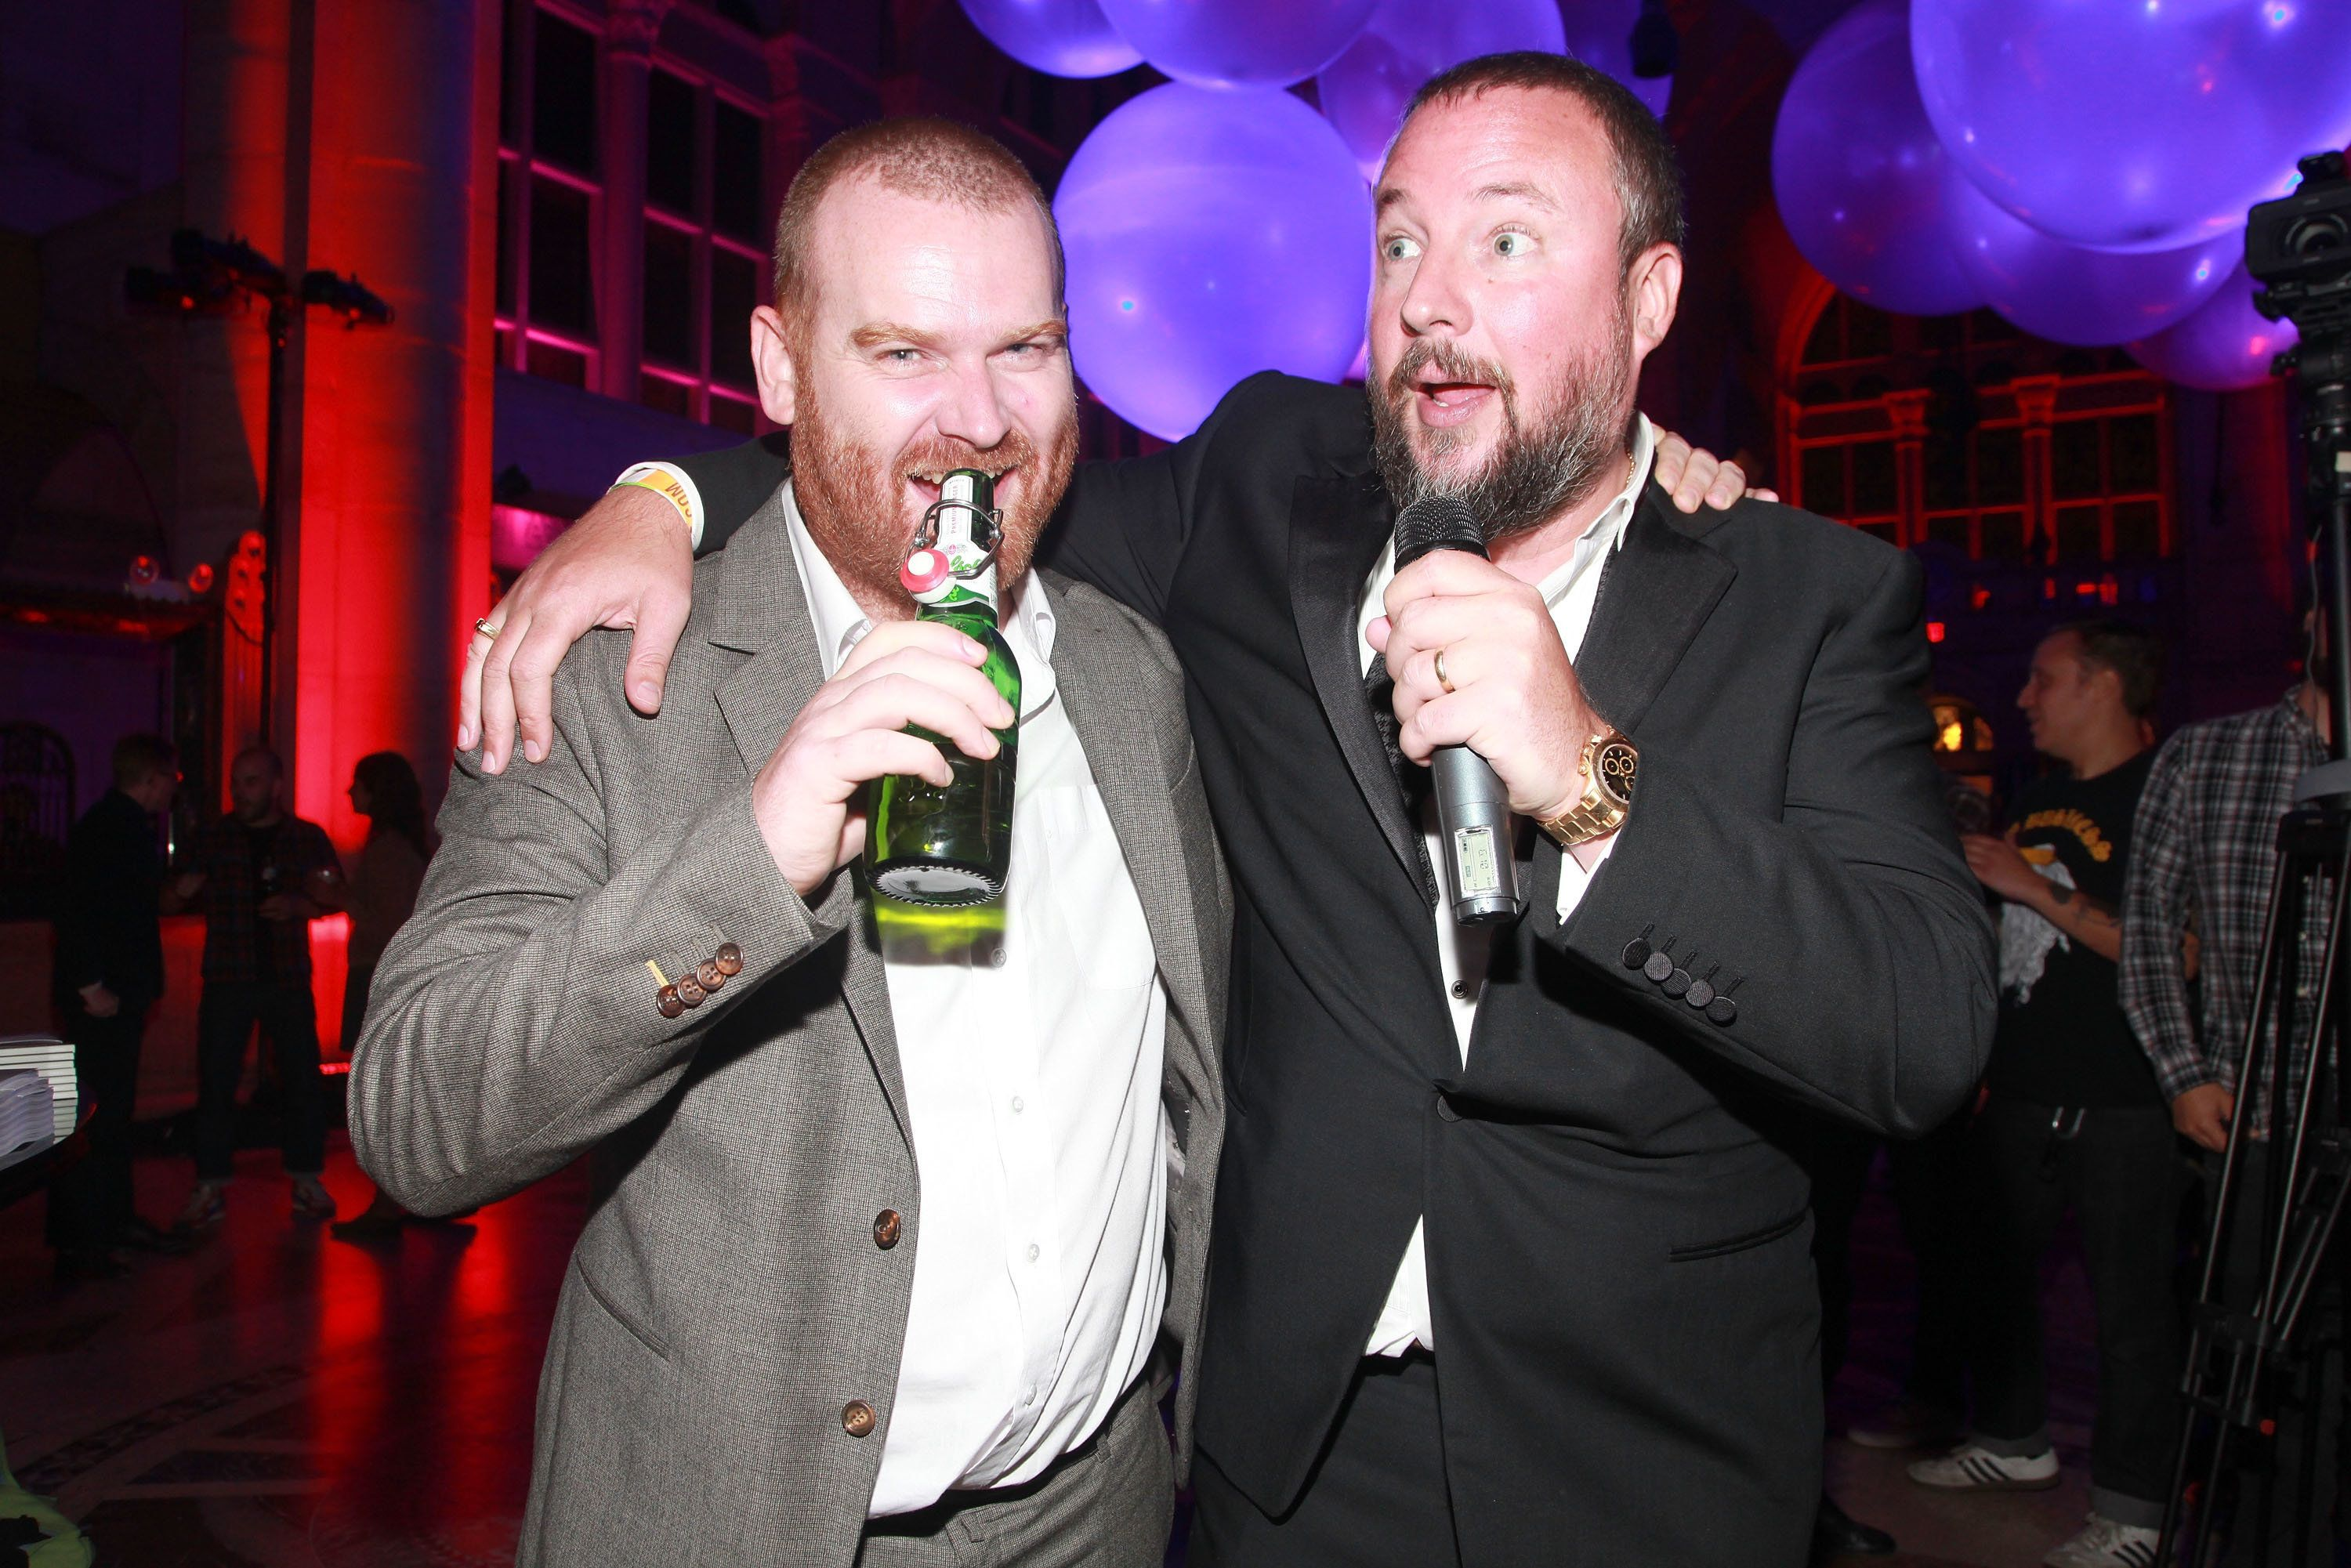 NEW YORK, NY - SEPTEMBER 15: (L-R) Andrew Creighton, President of VICE Media Group and Shane Smith, Founder of VICE  pose for photos during the Vice.com Launch Party at Skylight One Hanson on September 15, 2011 in the Brooklyn borough of New York City.  (Photo by Astrid Stawiarz/Getty Images)